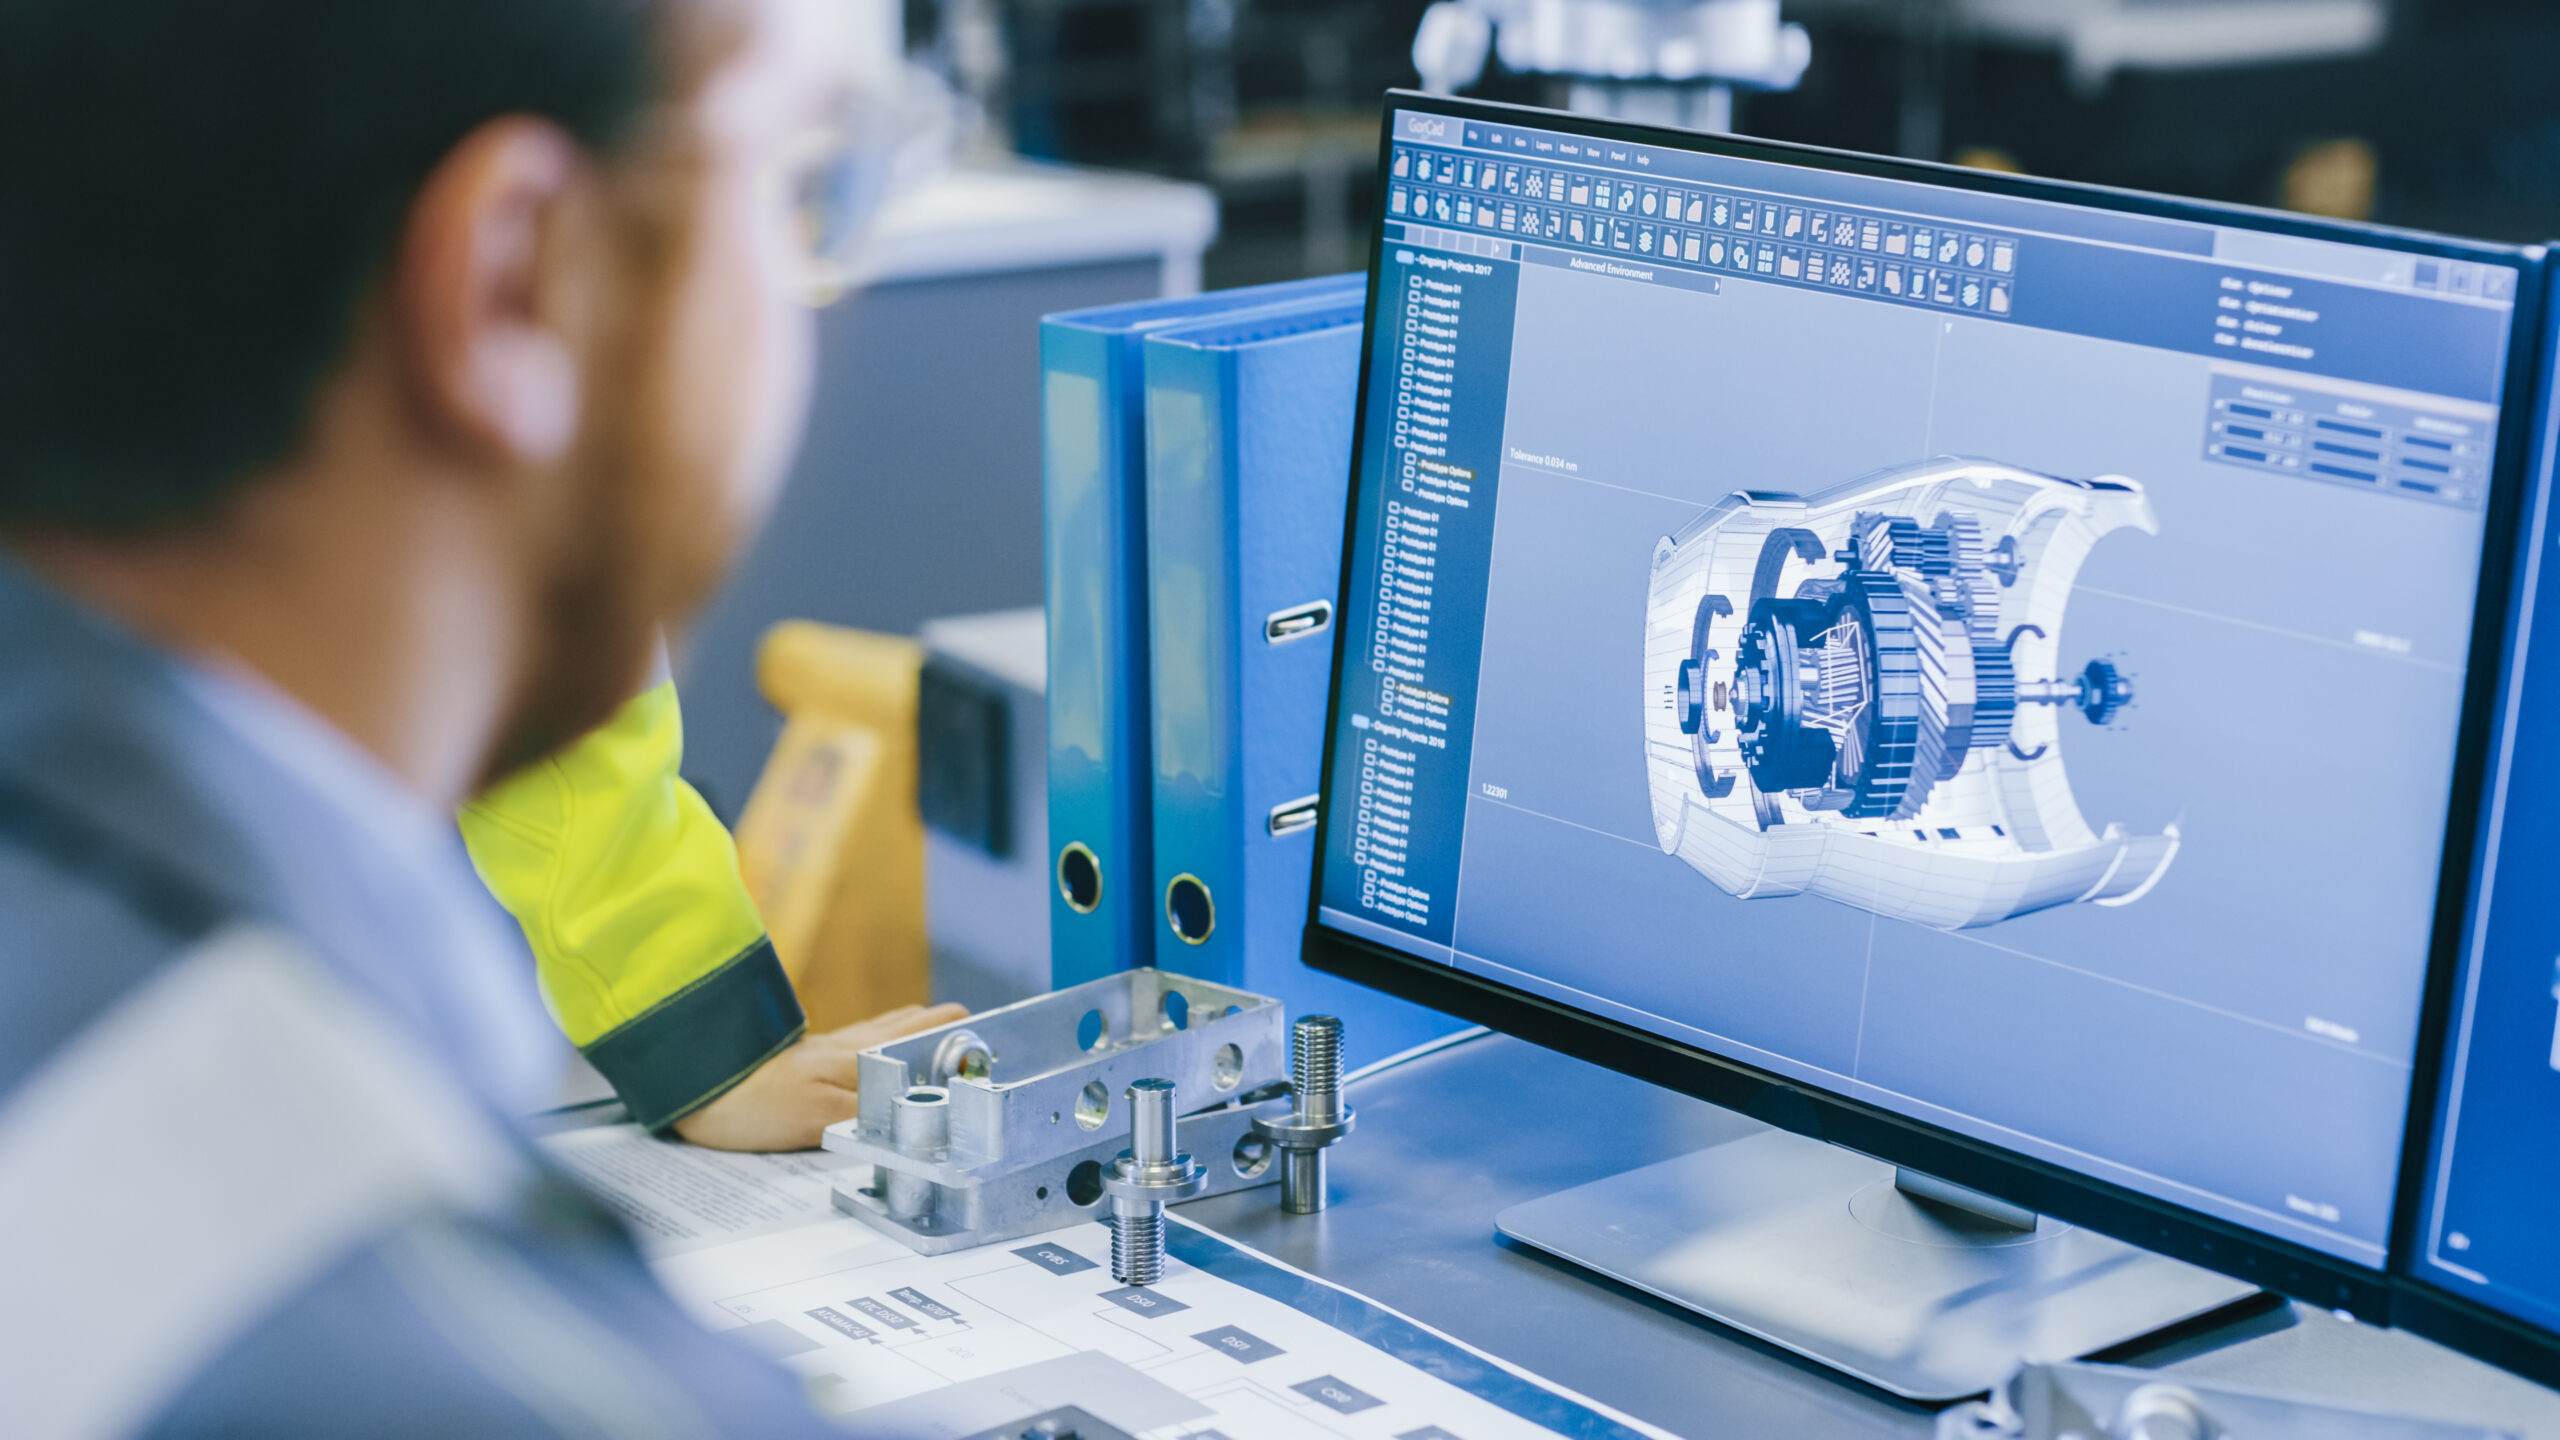 Close-up Back View of a Mechanical Engineer Designing 3D Engine Model on Computer utilizing MBD and MBE technologies. Professional Working At a Factory designing.